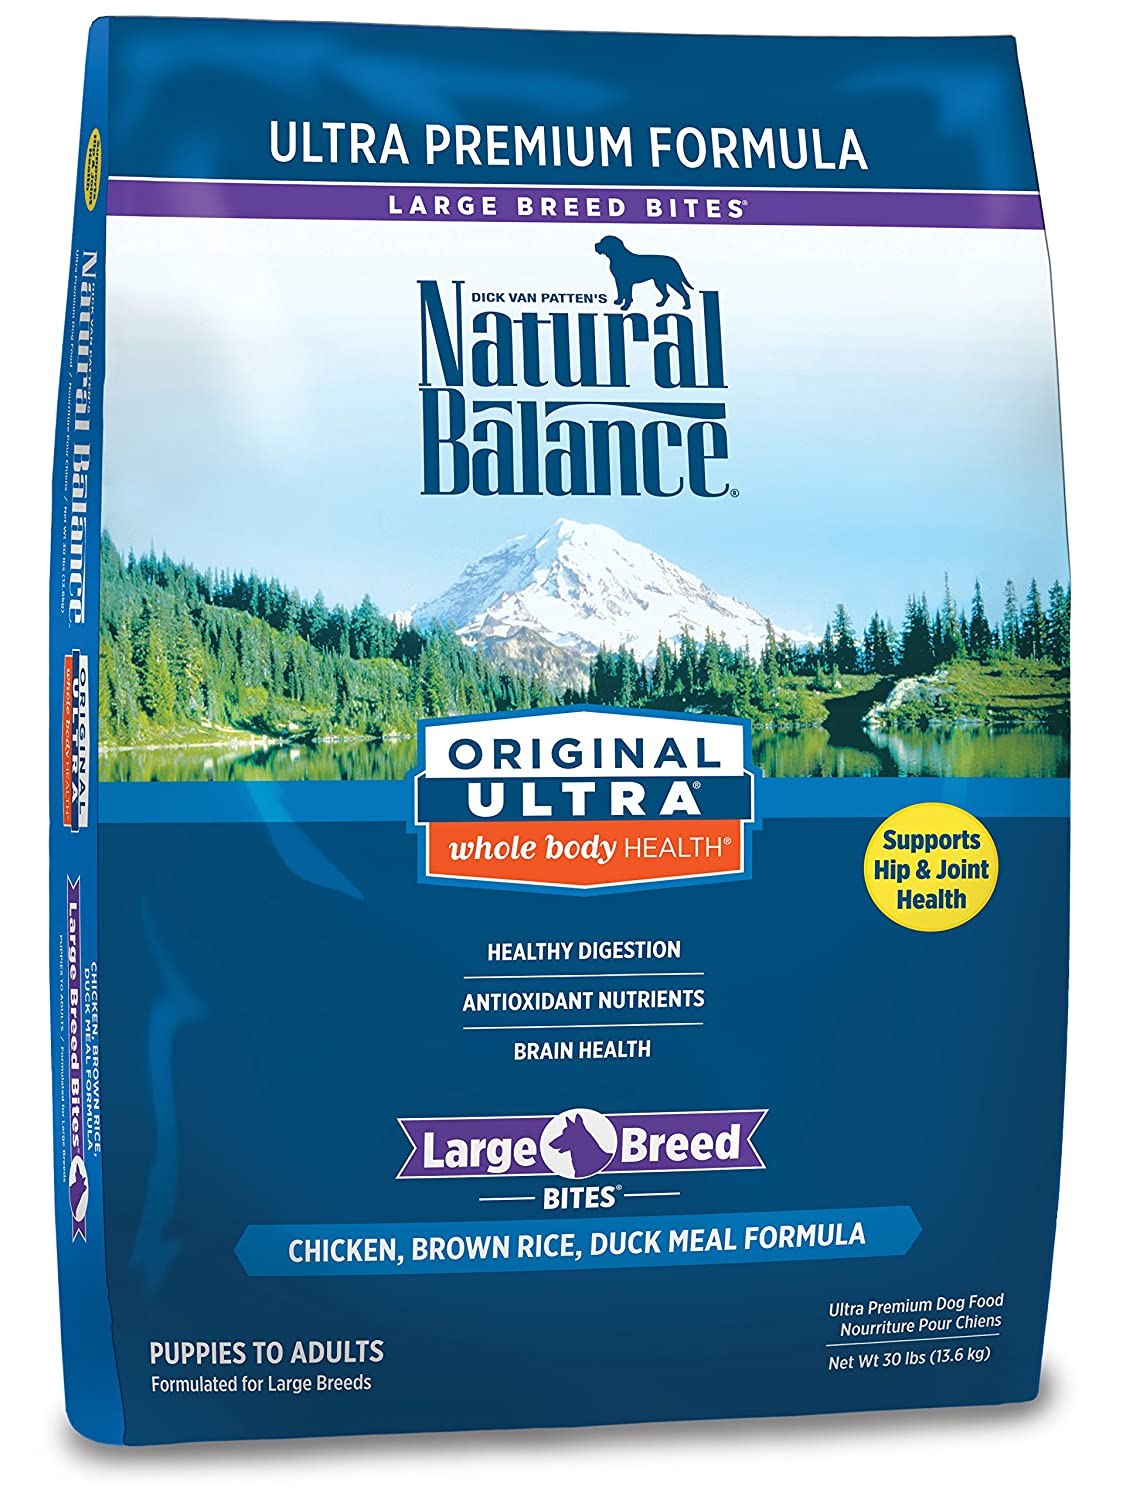 Natural Balance Original Ultra Whole Body Health Large Breed Recipe